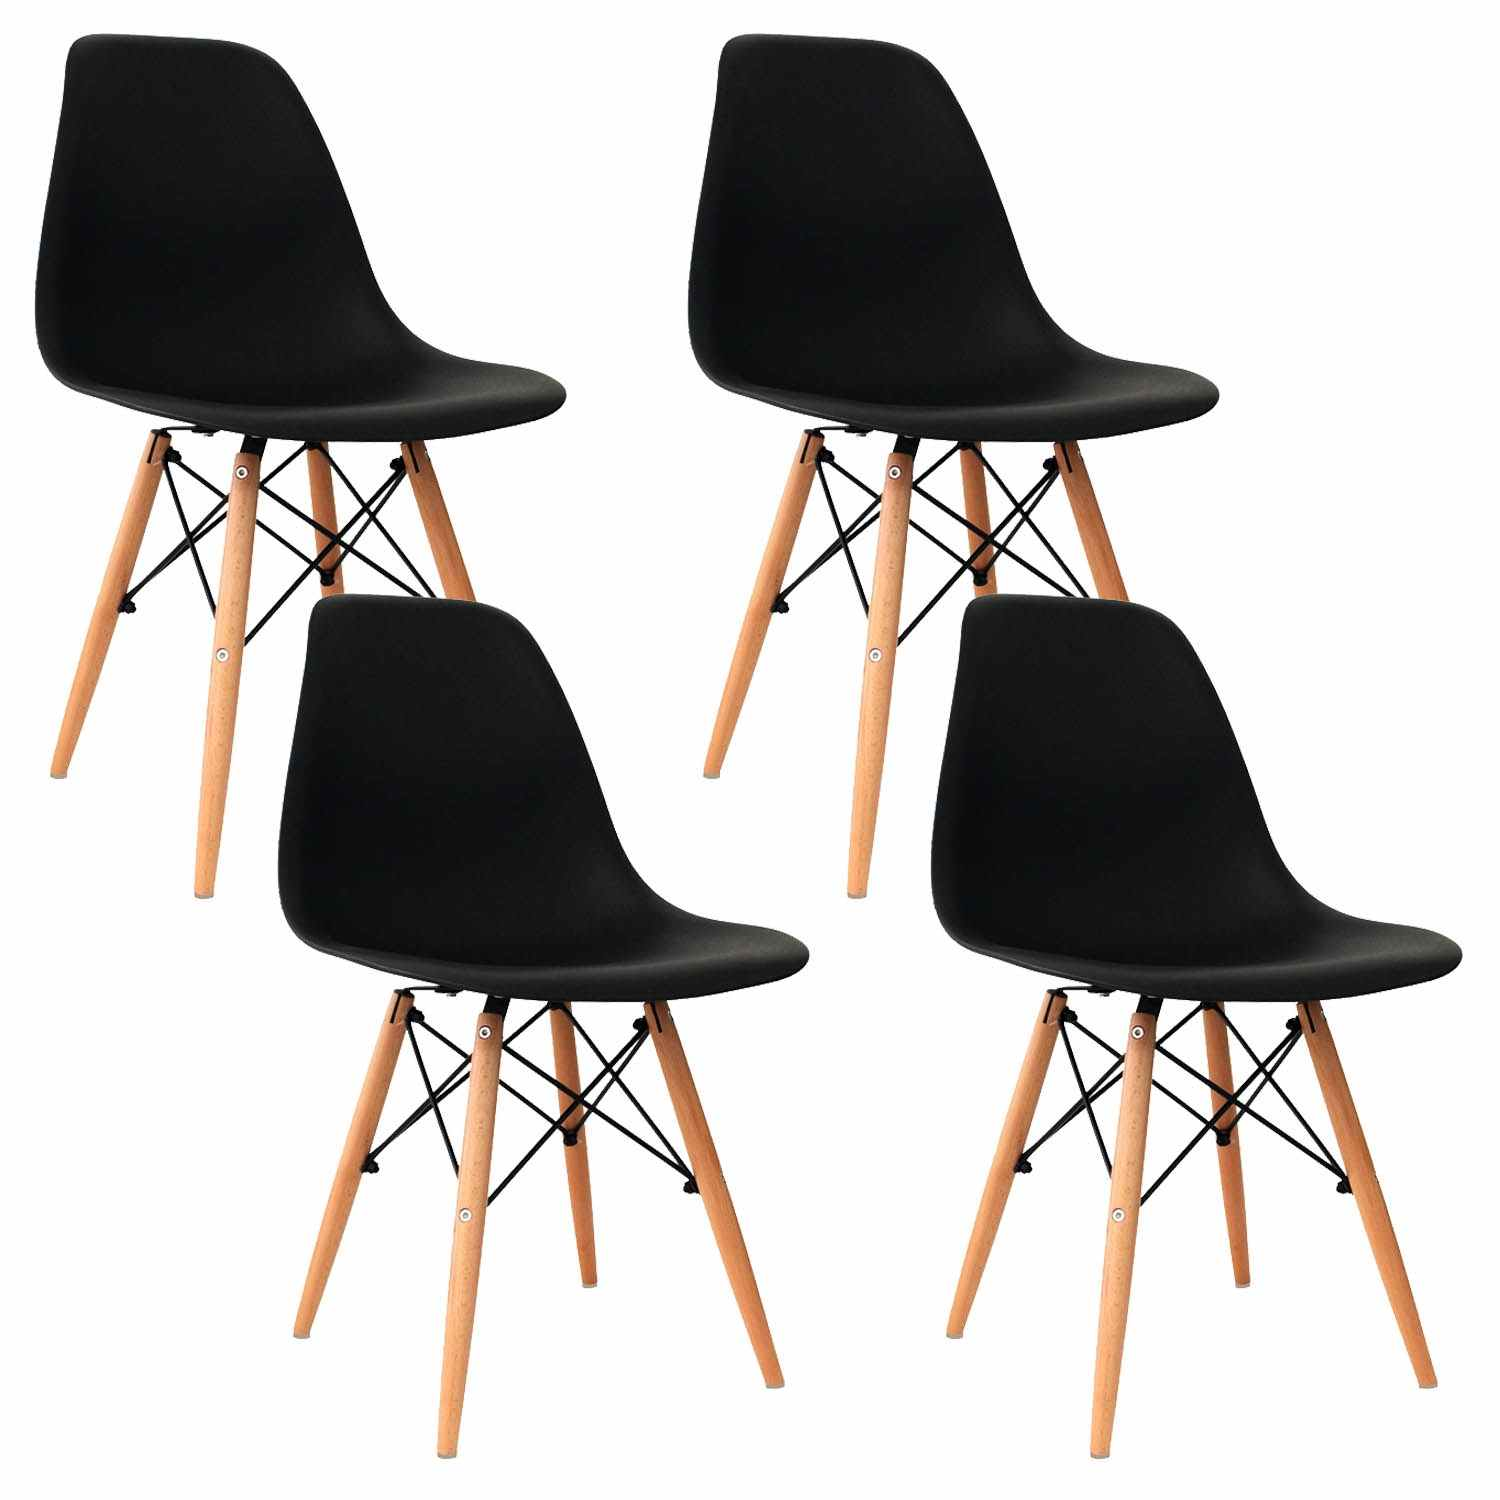 Deco in paris lot de 4 chaises design noir nina nina x4 noir - Lot de 4 chaises design ...